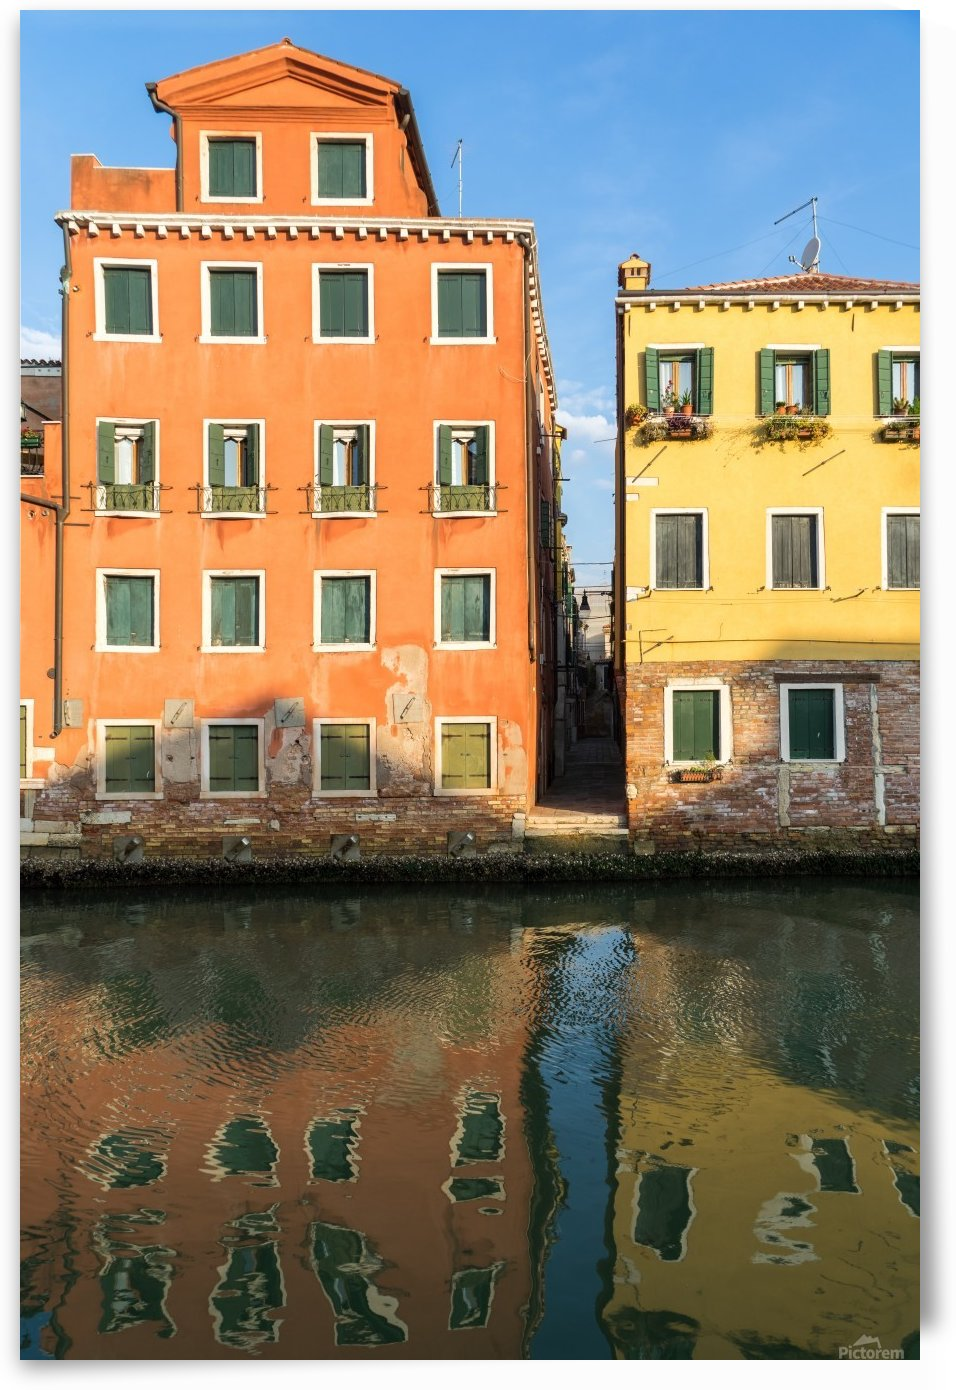 Happy Venetian - Cheerful Canalside Houses In Orange And Yellow by GeorgiaM